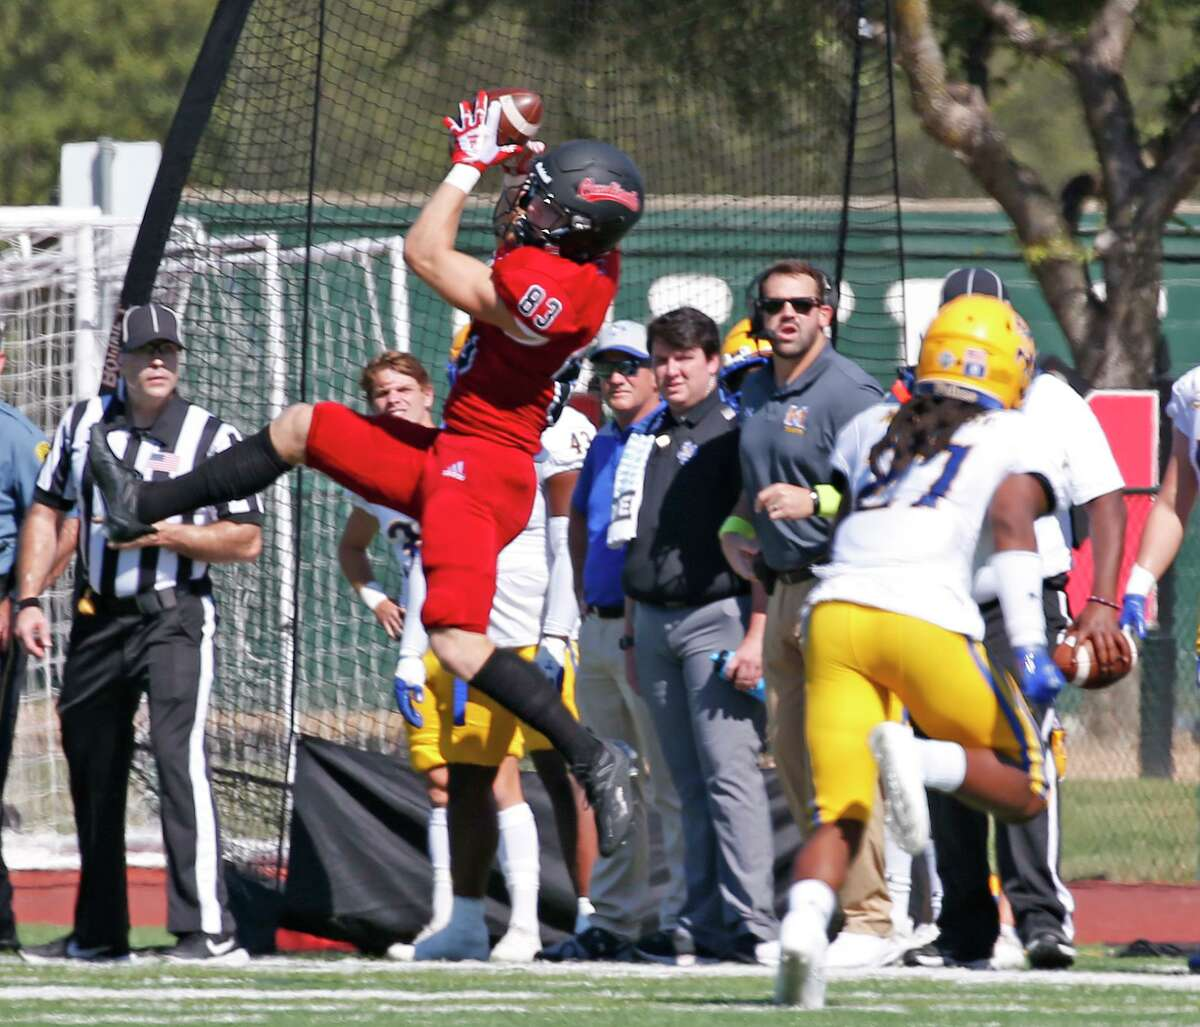 UIW wide receiver Trevor Begue makes a reception in first quarter on Saturday, Sept. 25, 2021. Halftime score UIW 21 McNeese 0.